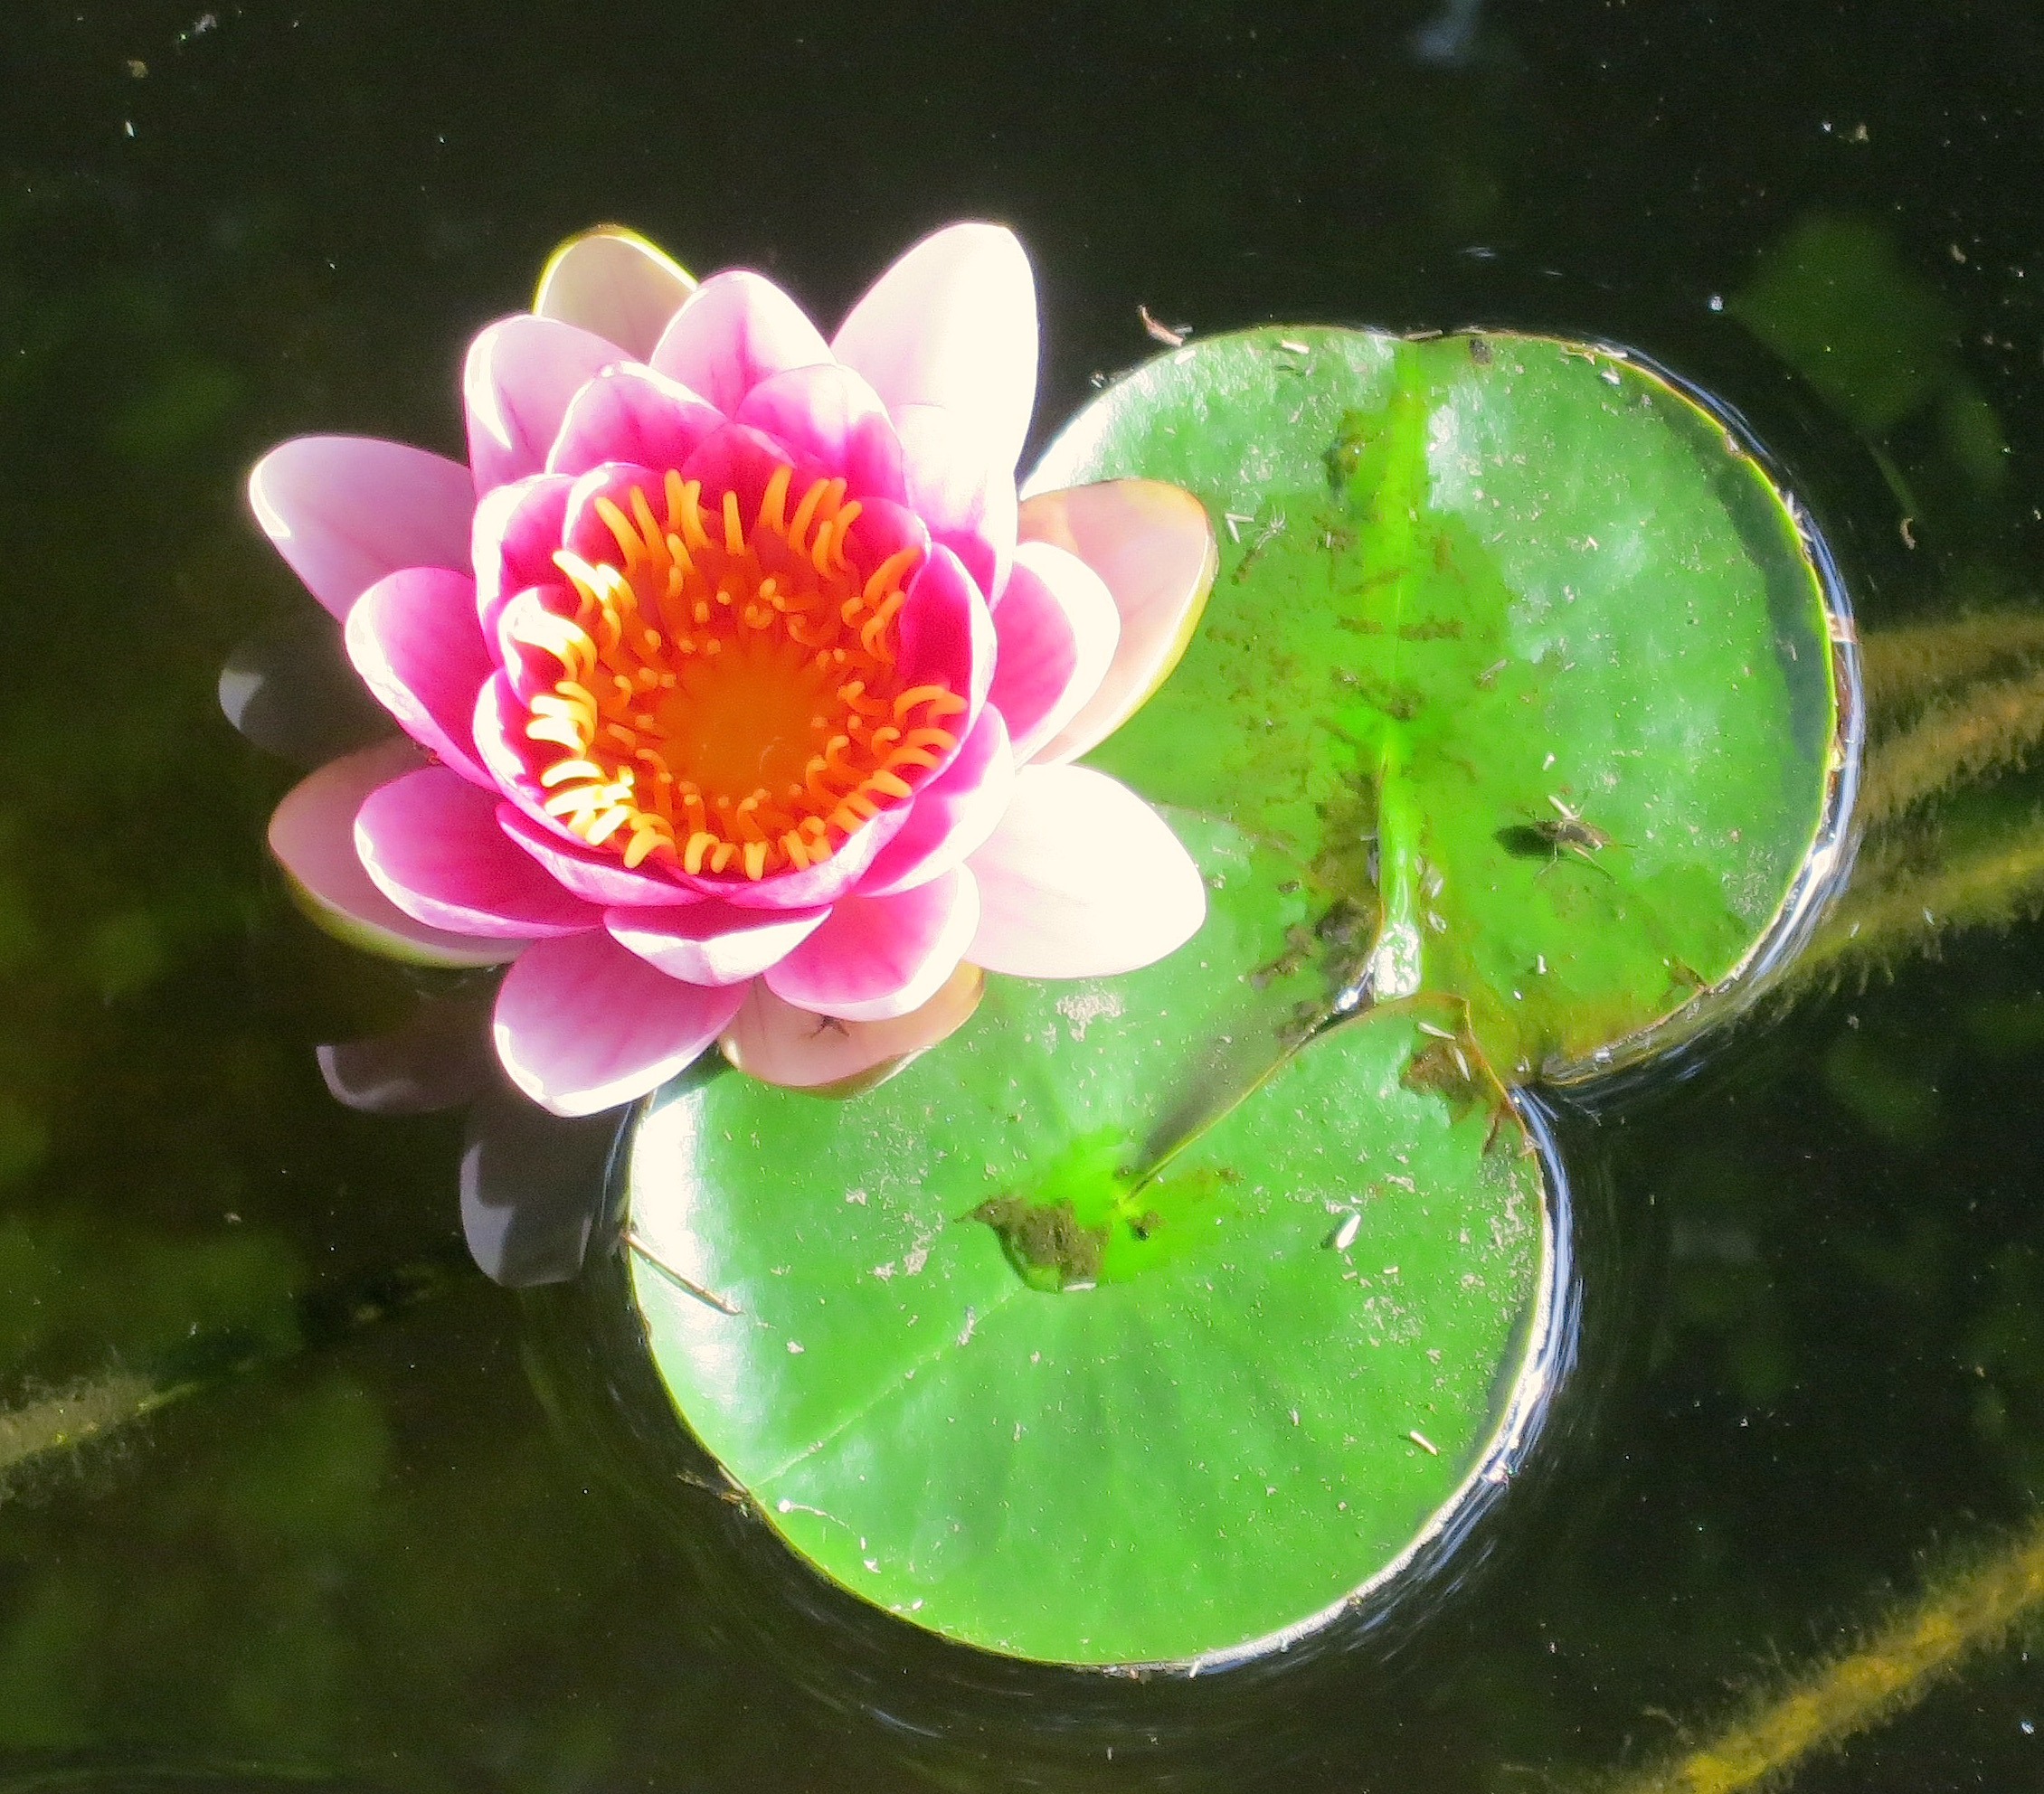 waterlily5